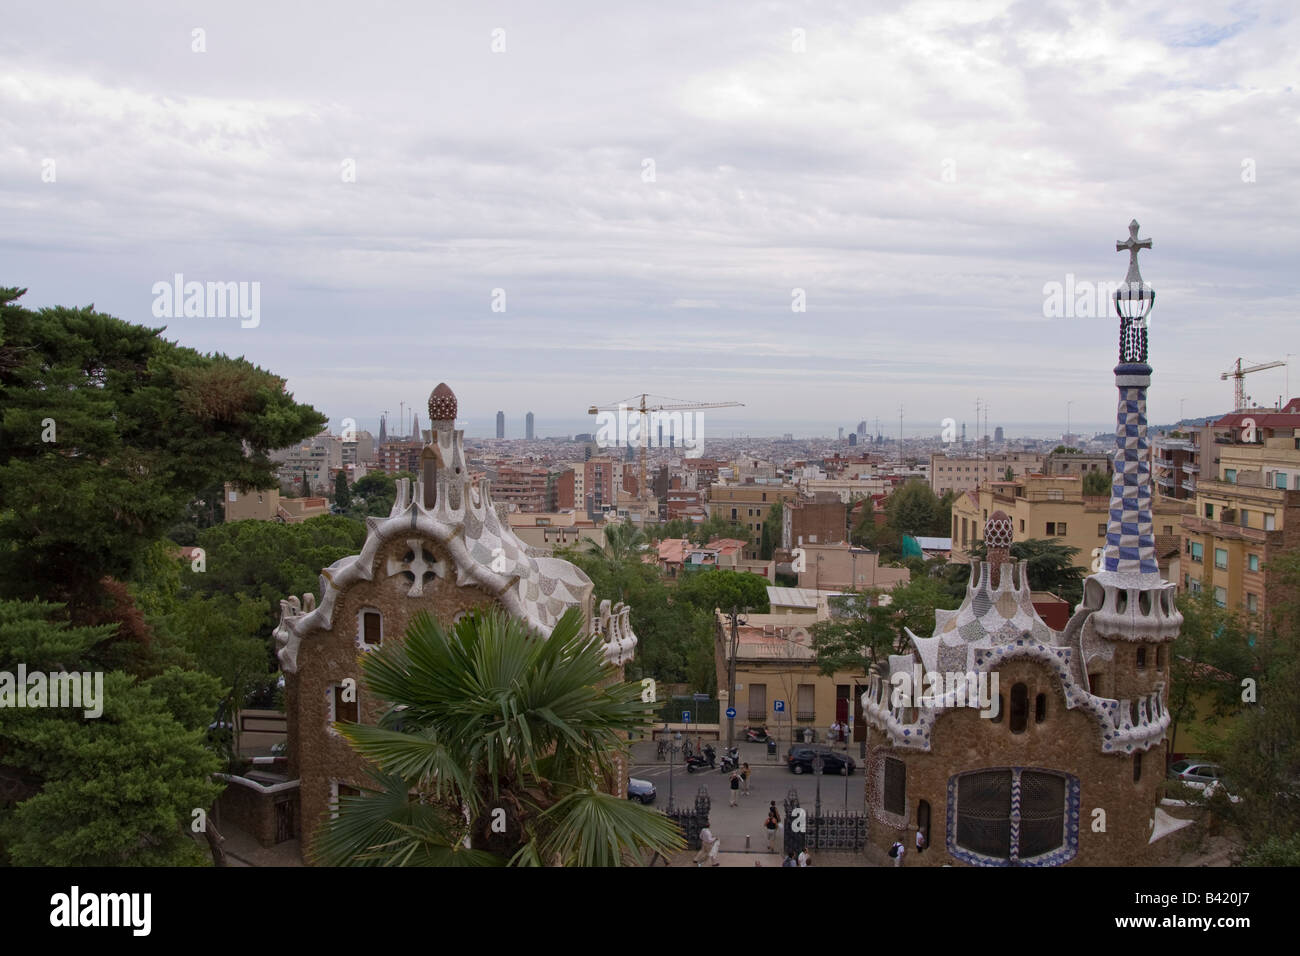 View of the entrance of Parc Guell in Barcelona Spain - Stock Image